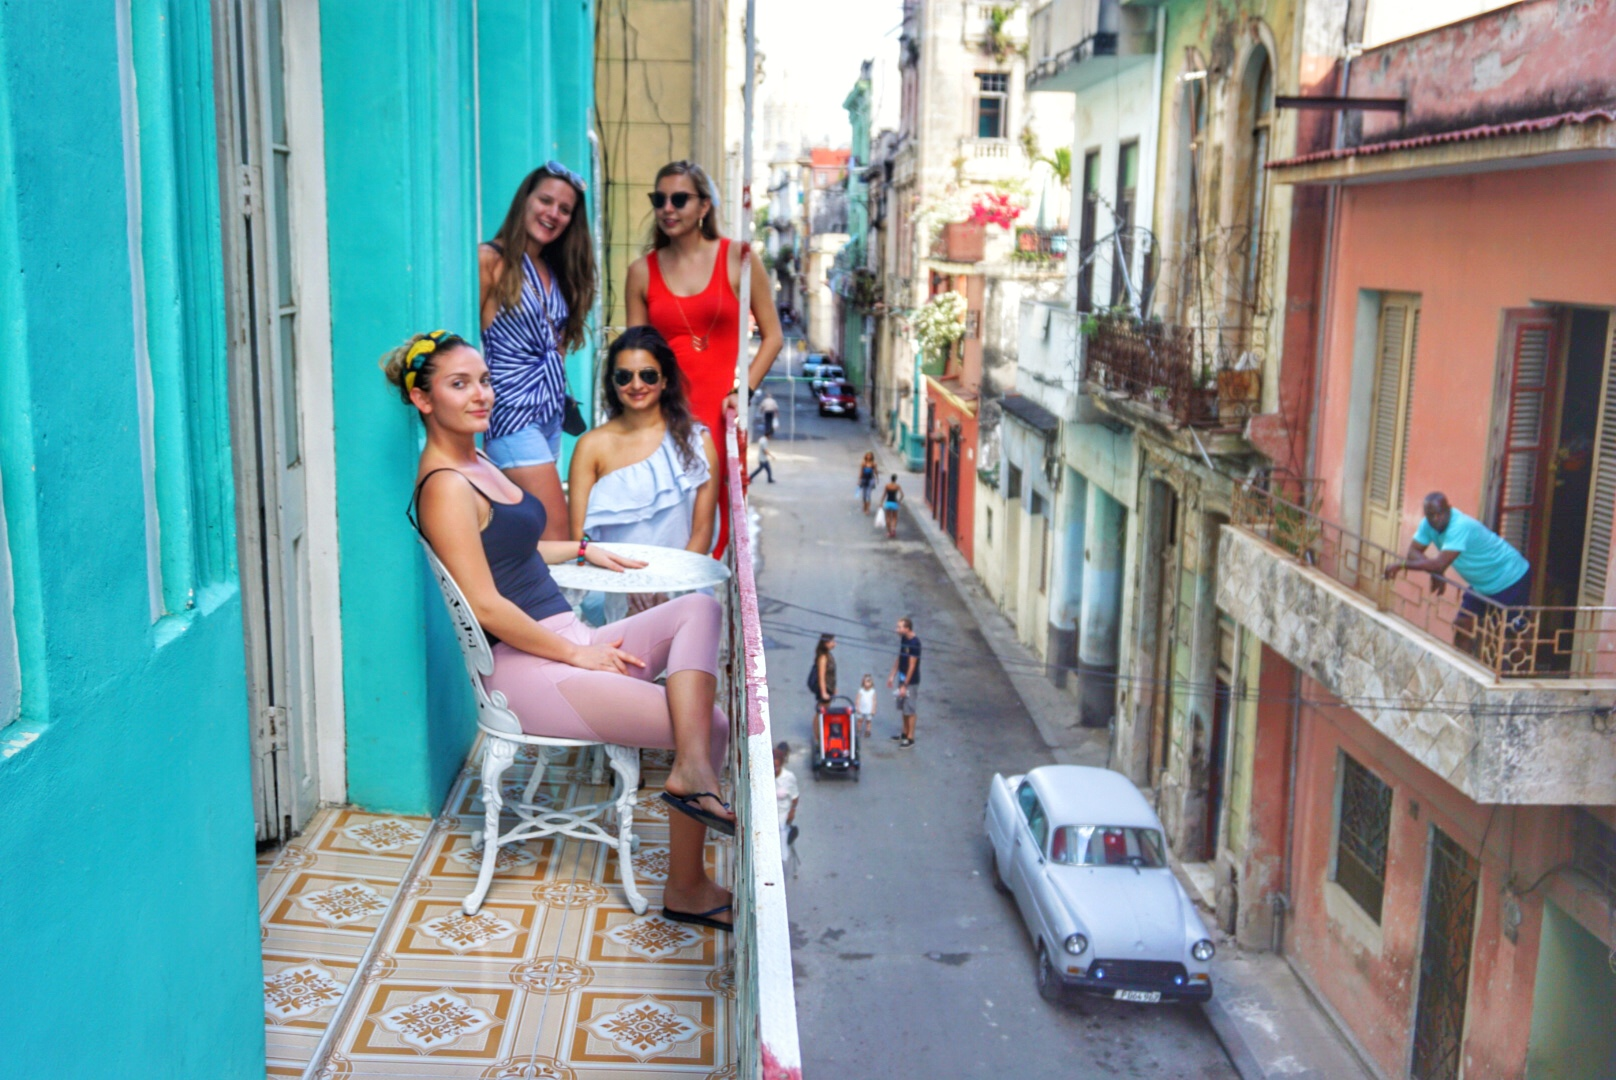 On our balcony at the home of a local family in Old Havana. El Capitolio is in the background, which is currently being renovated (because the government is going to move in there, according to our local tour guide.